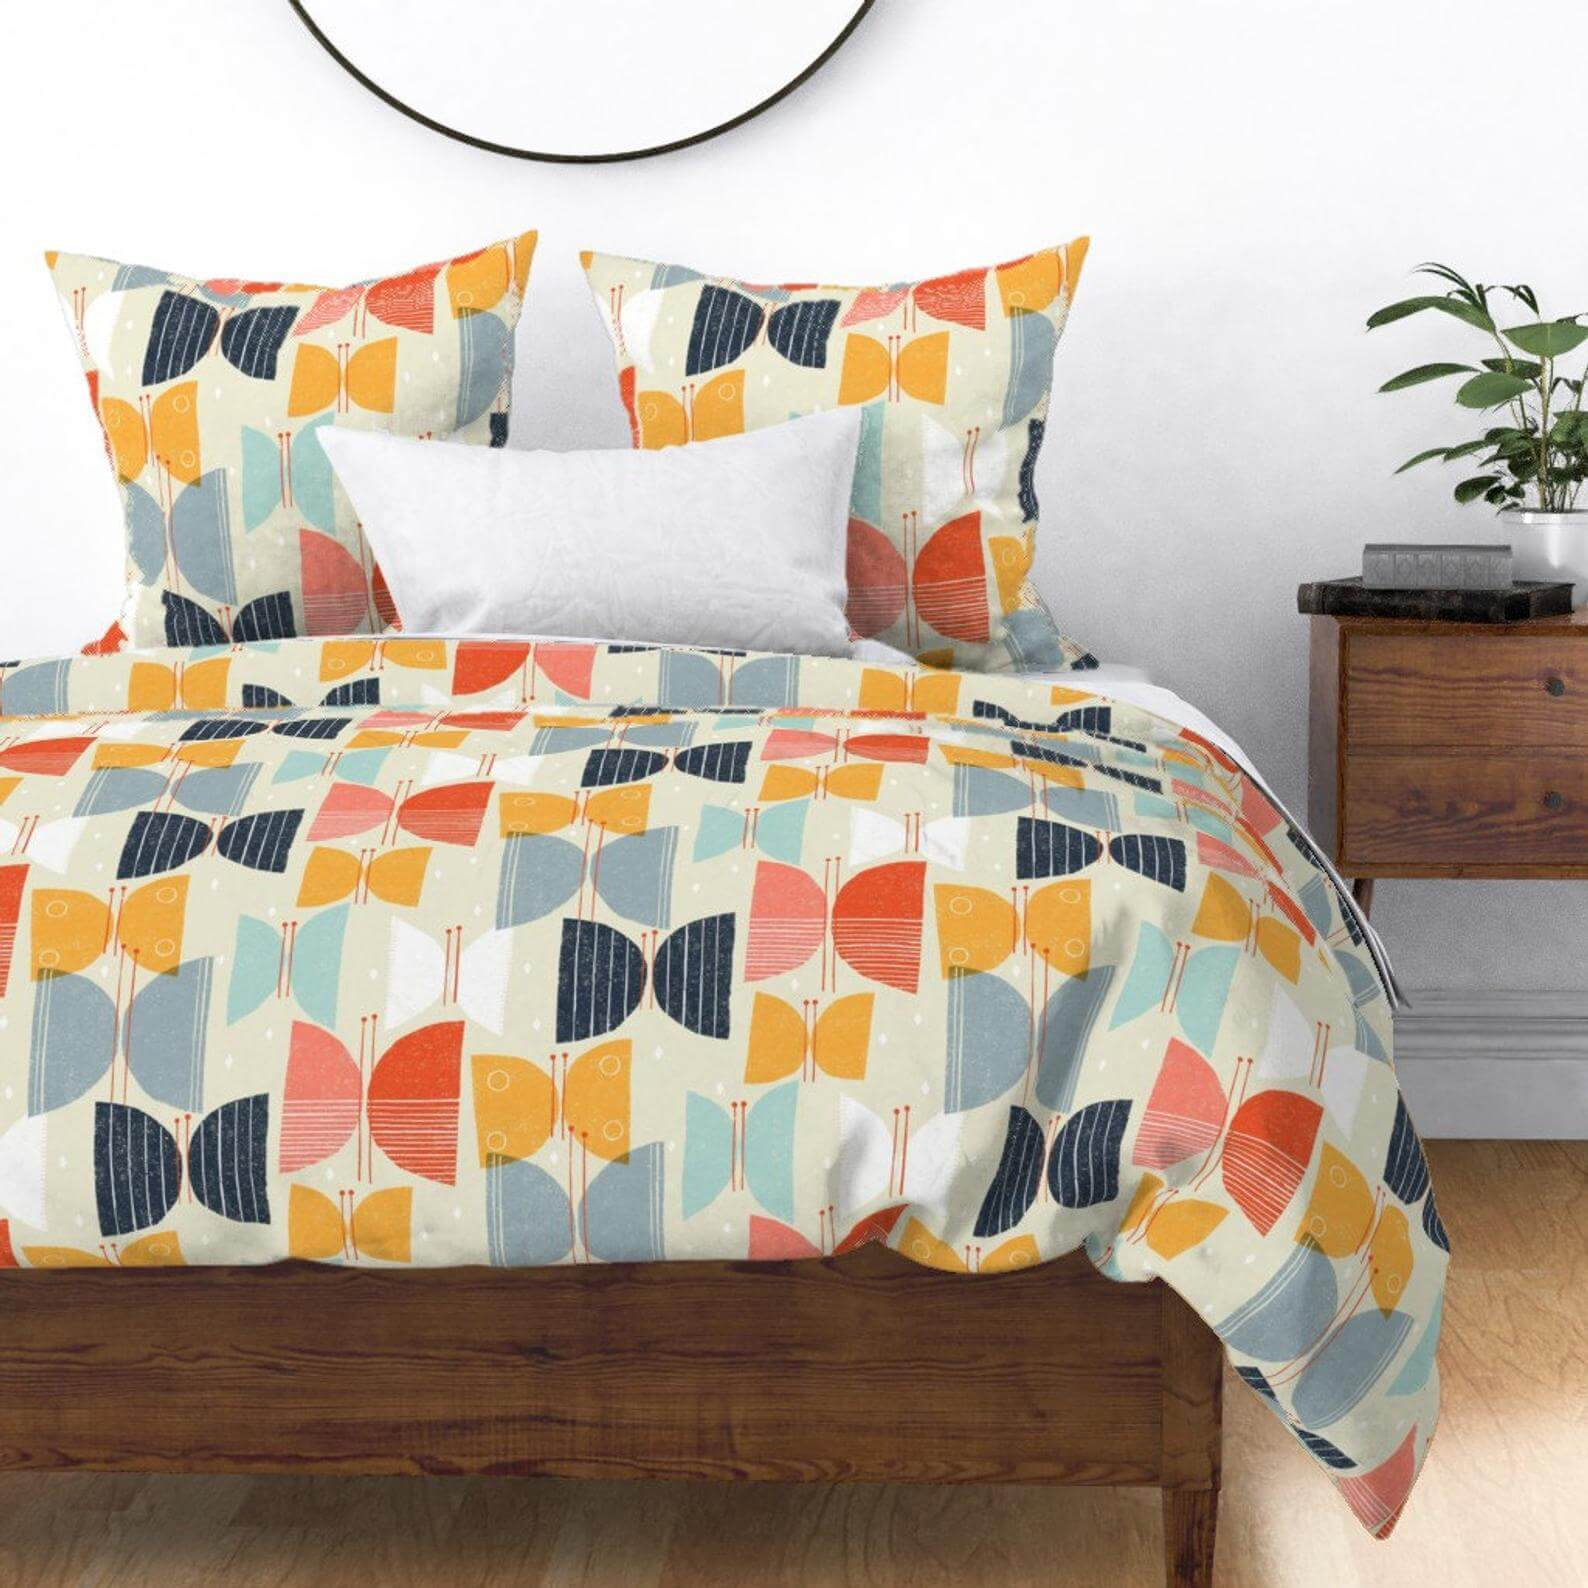 Mid century bedding covered in an abstract multi-colored butterfly pattern.